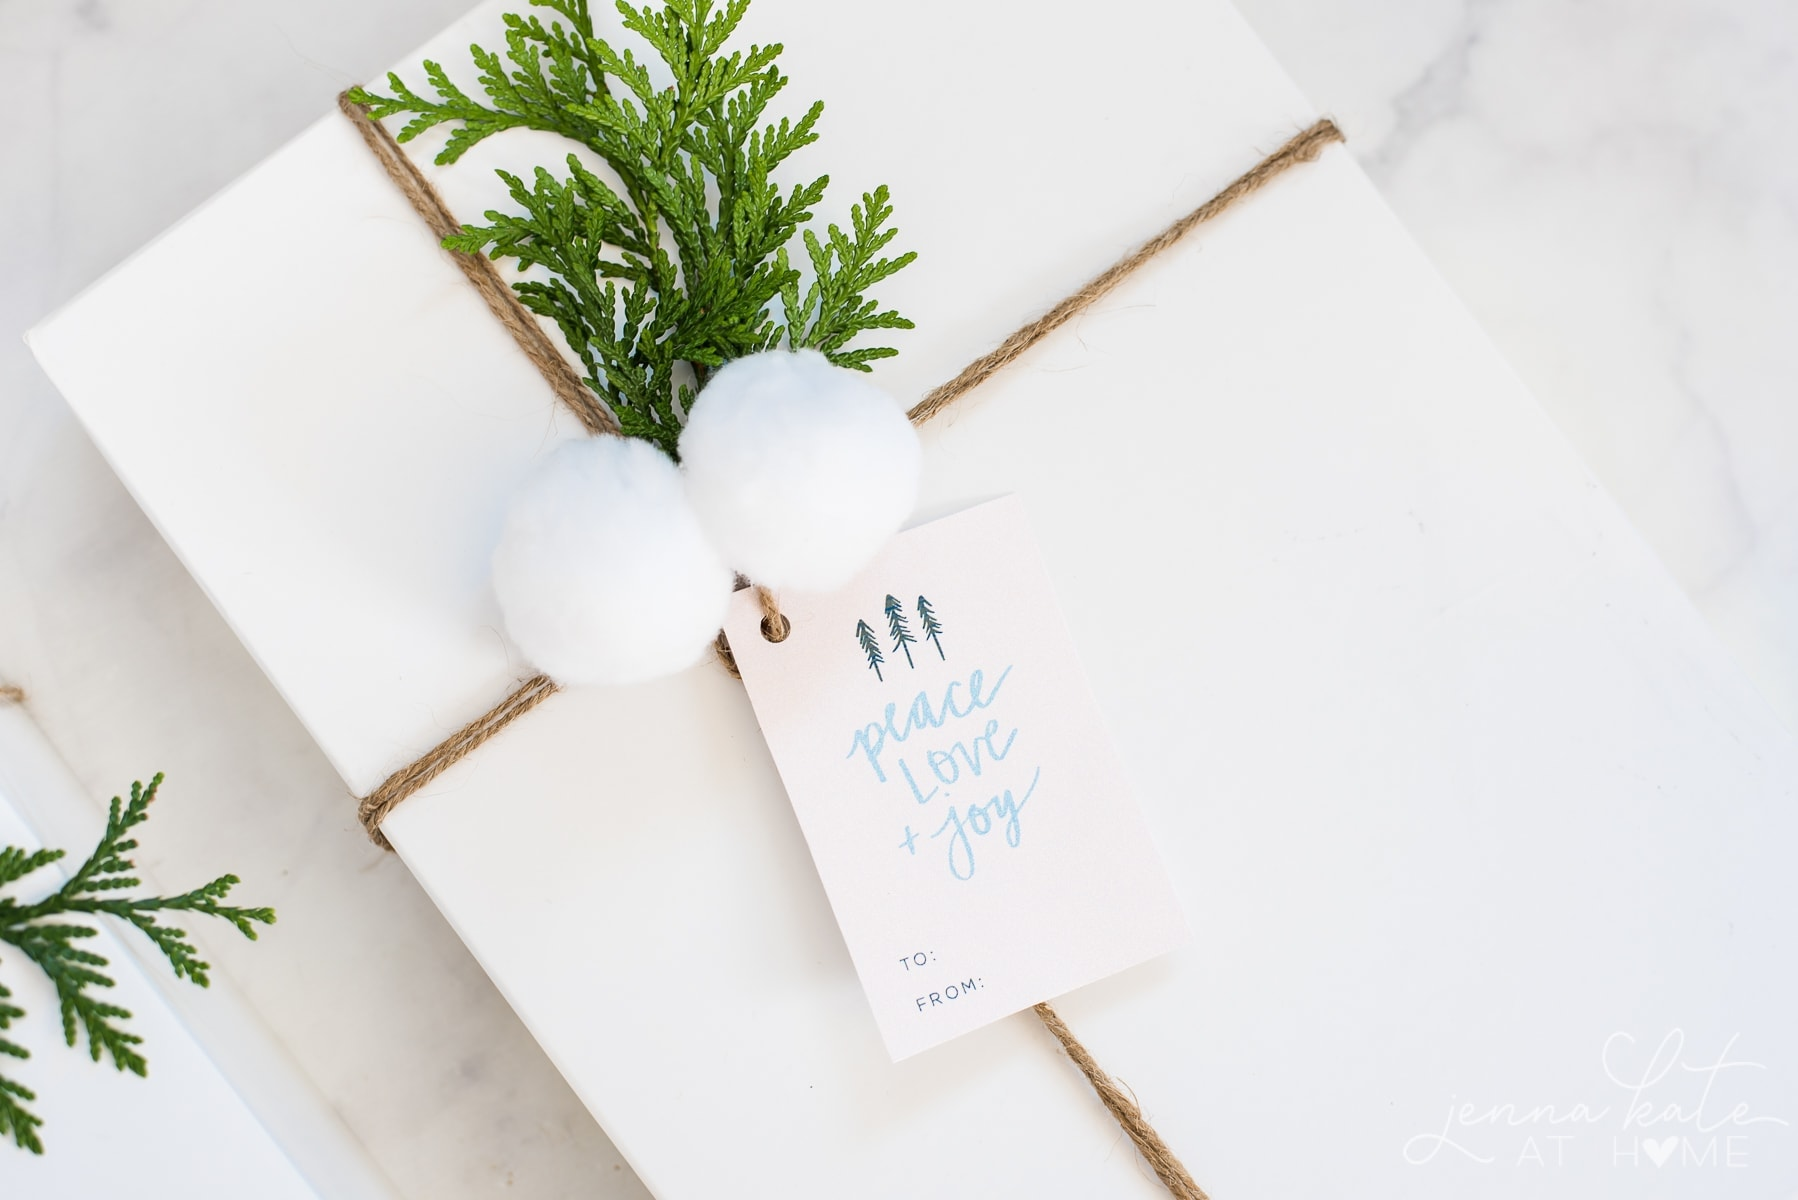 Free printable Christmas gift tags. Personalize with recipients name!